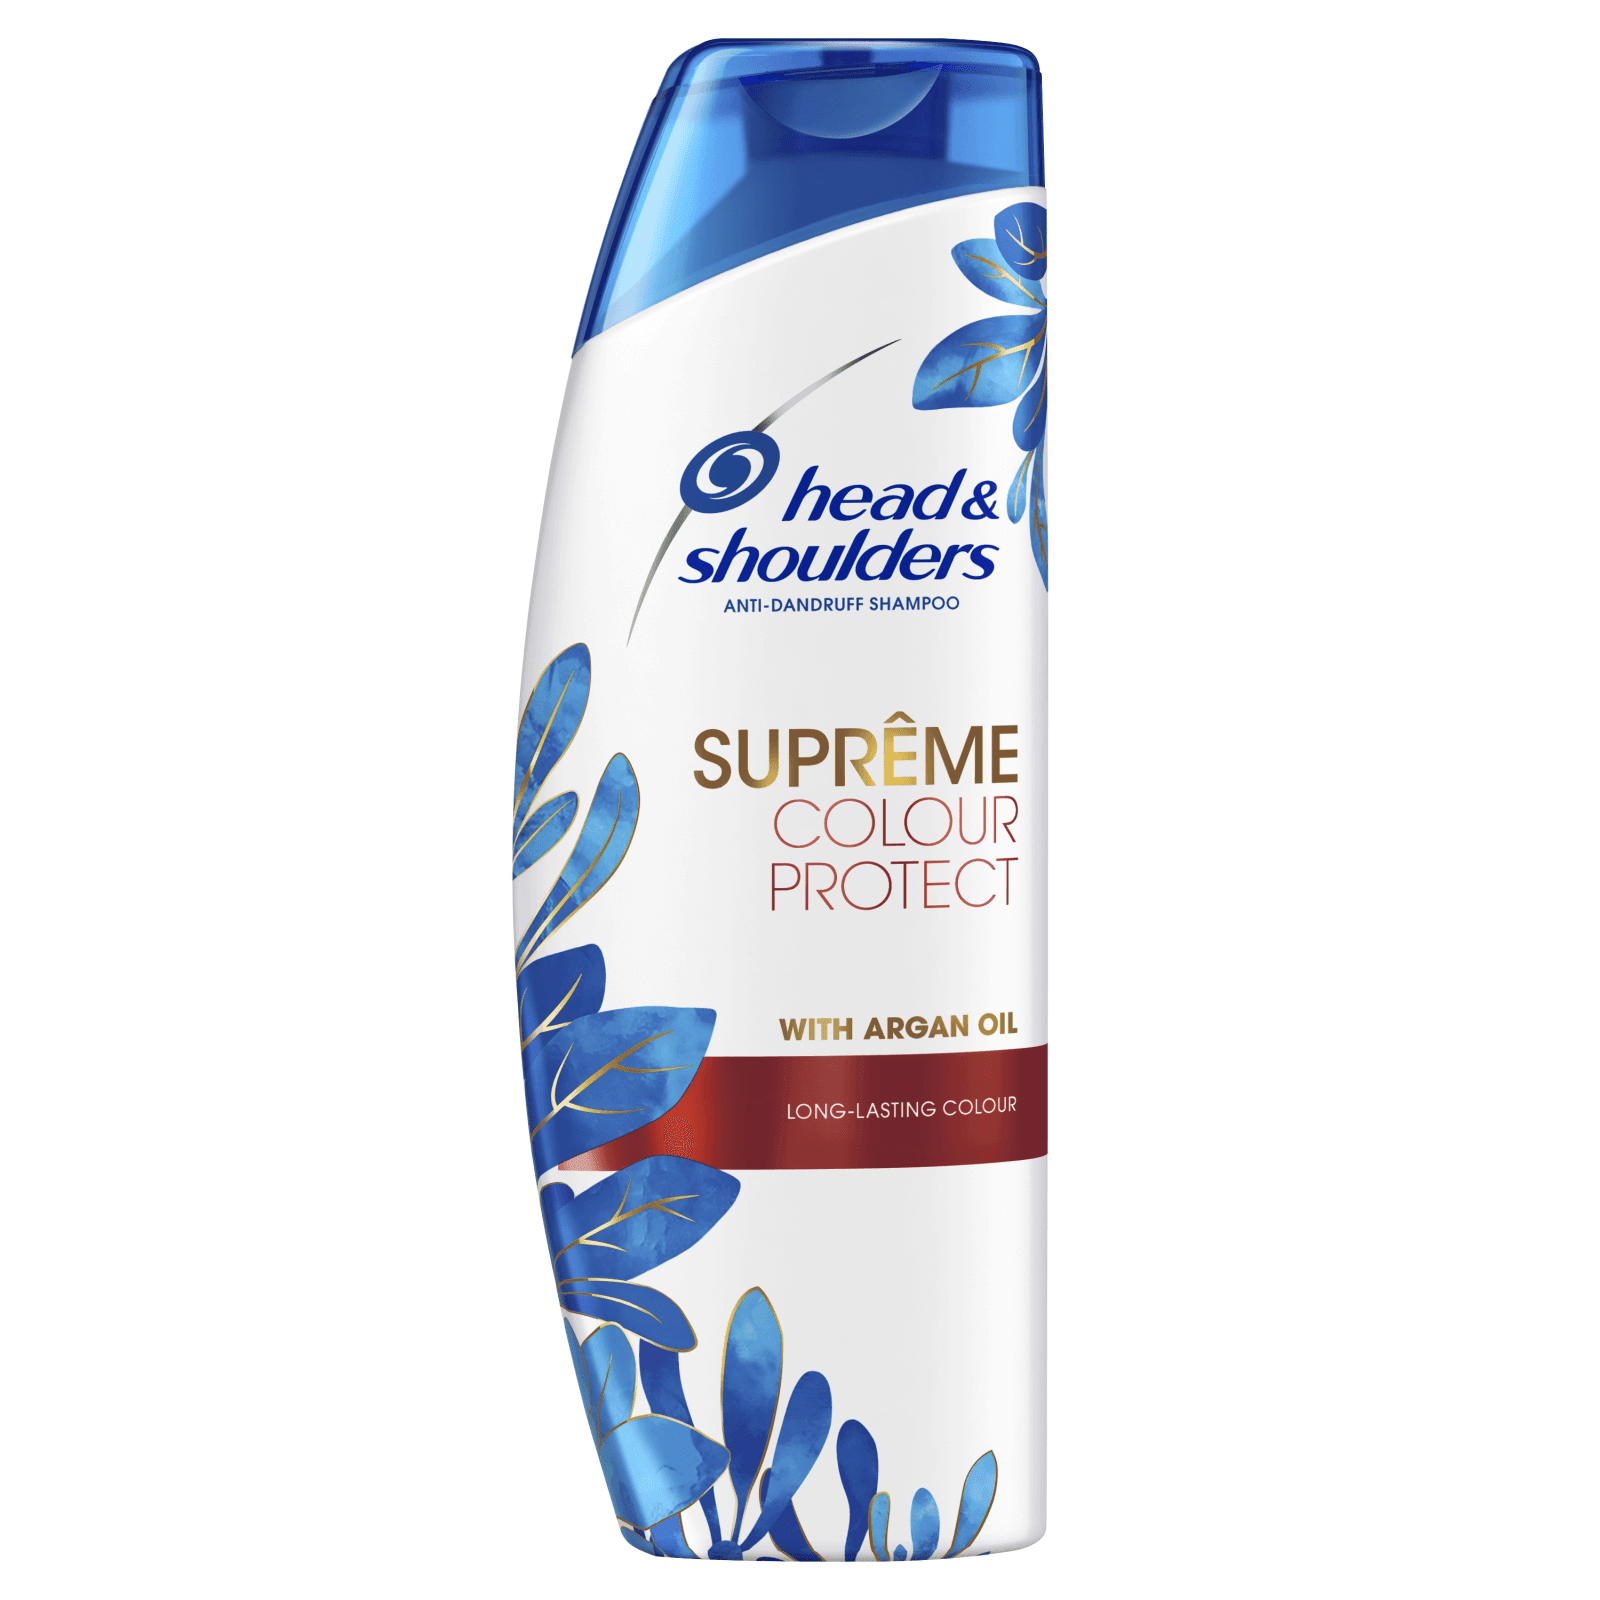 Supreme Colour Protect Anti-Dandruff Shampoo